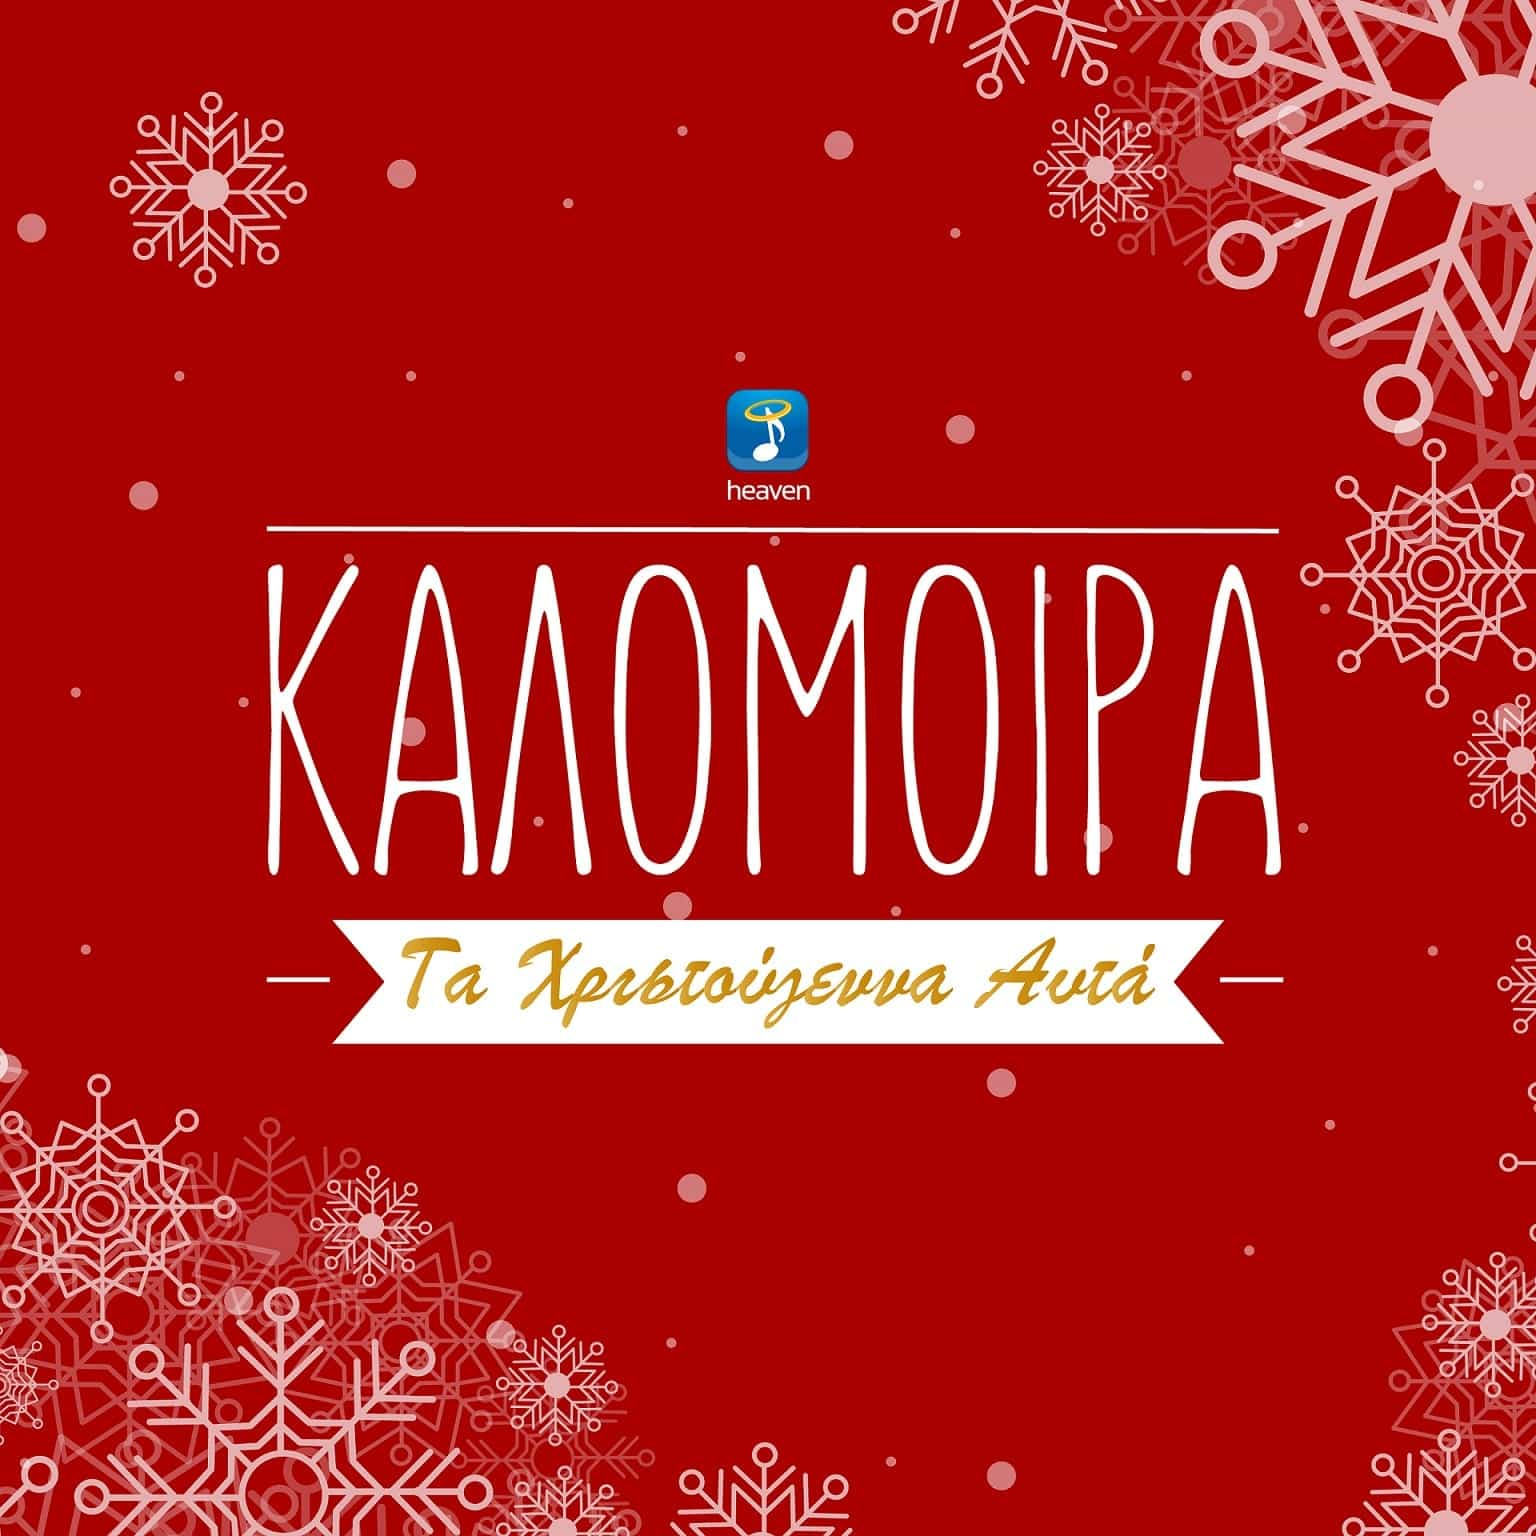 kalomira-neo-single-ta-christougenna-afta